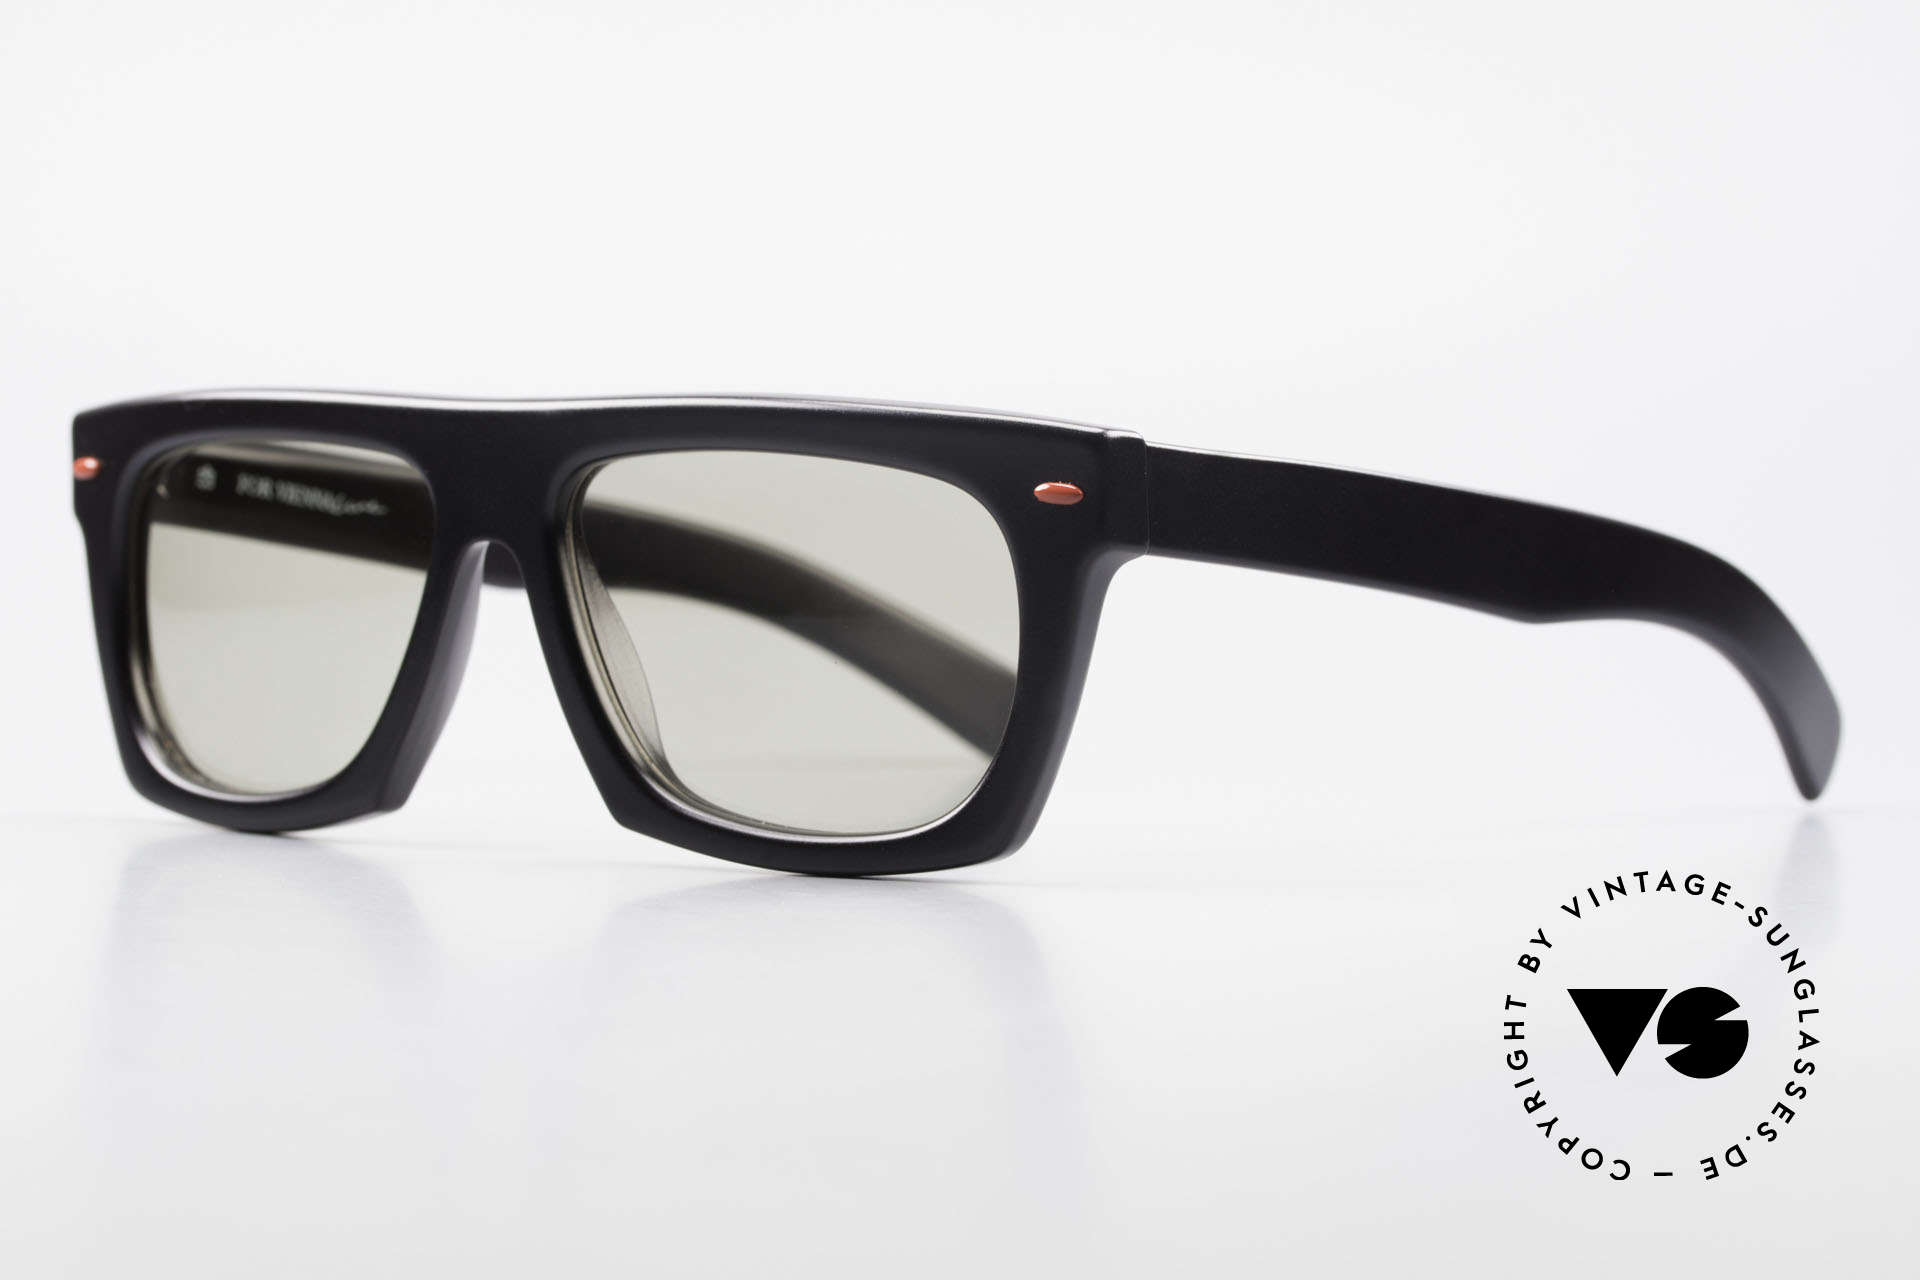 Paloma Picasso 1460 Striking 90's Designer Shades, striking 90's frame in cooperation with ViennaLine, Made for Men and Women